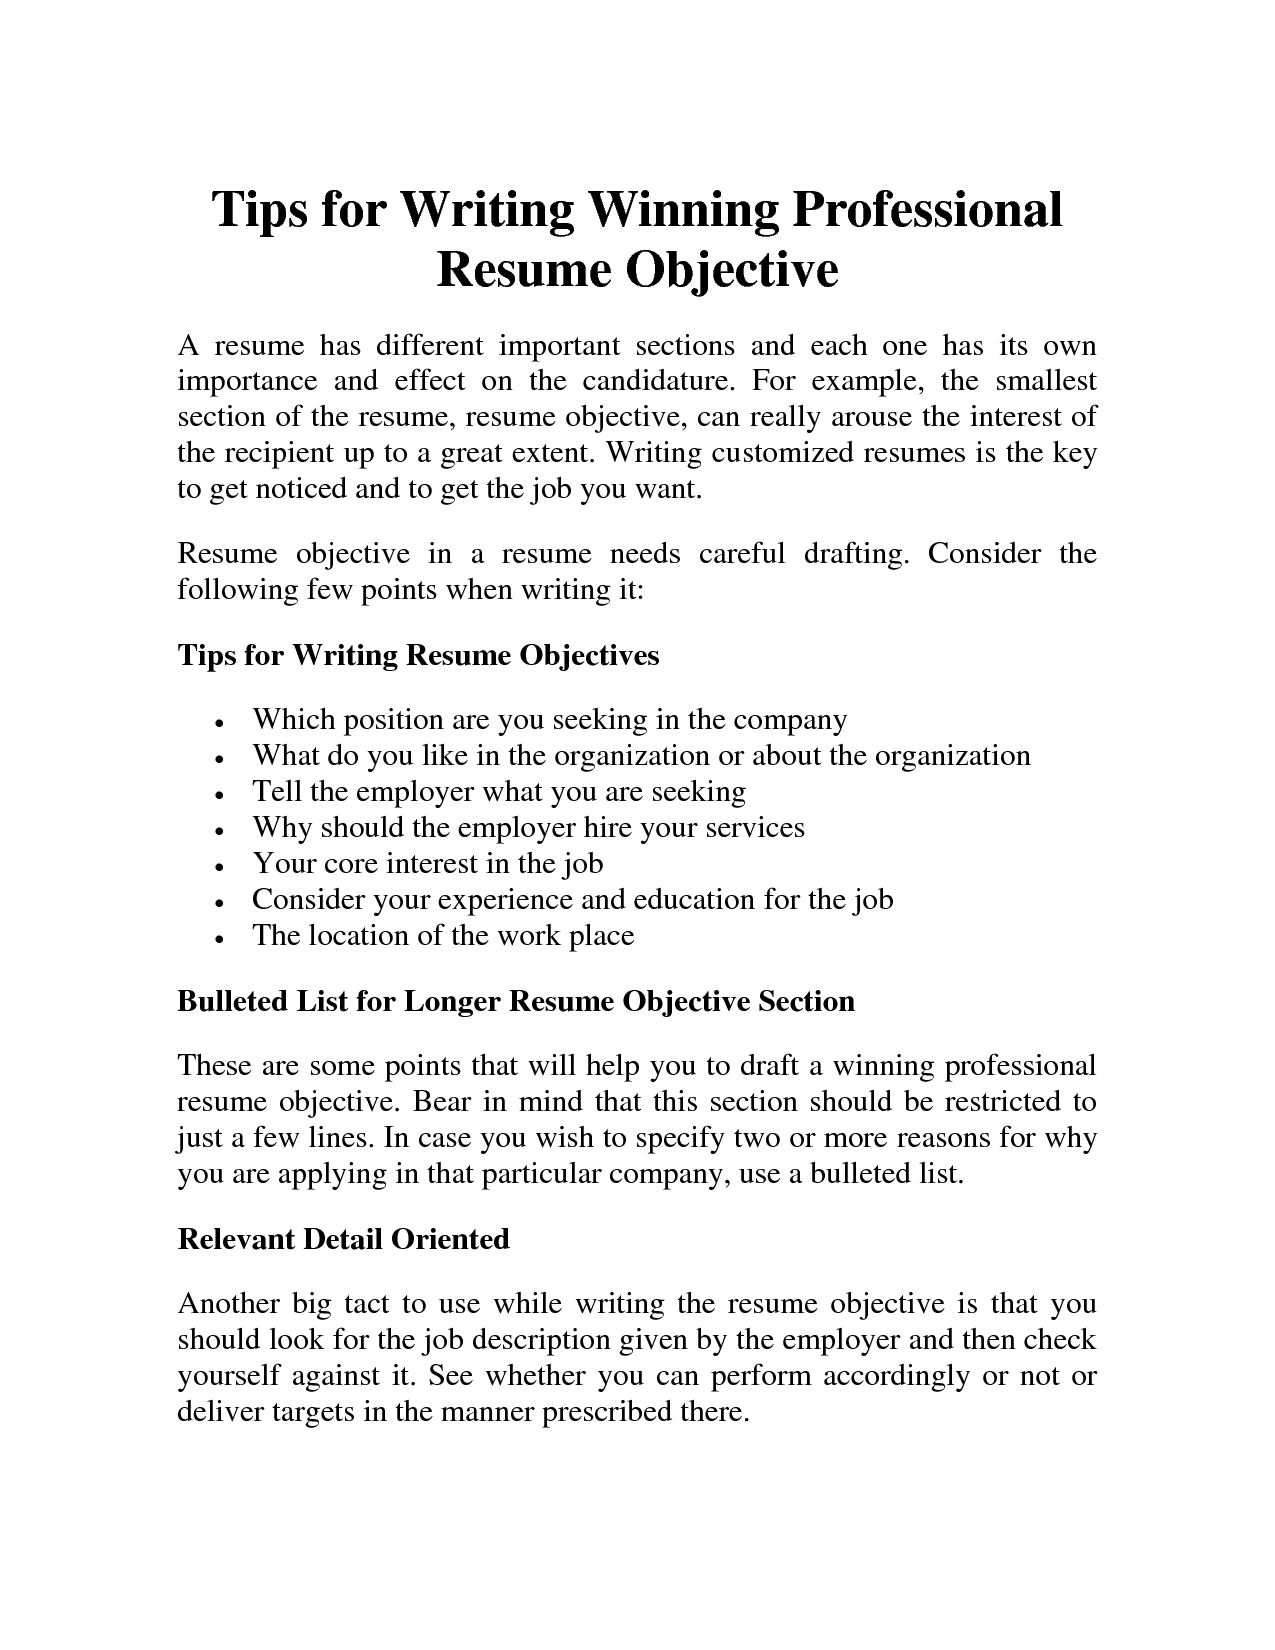 Professional Resume Objective SamplesProfessional Resume